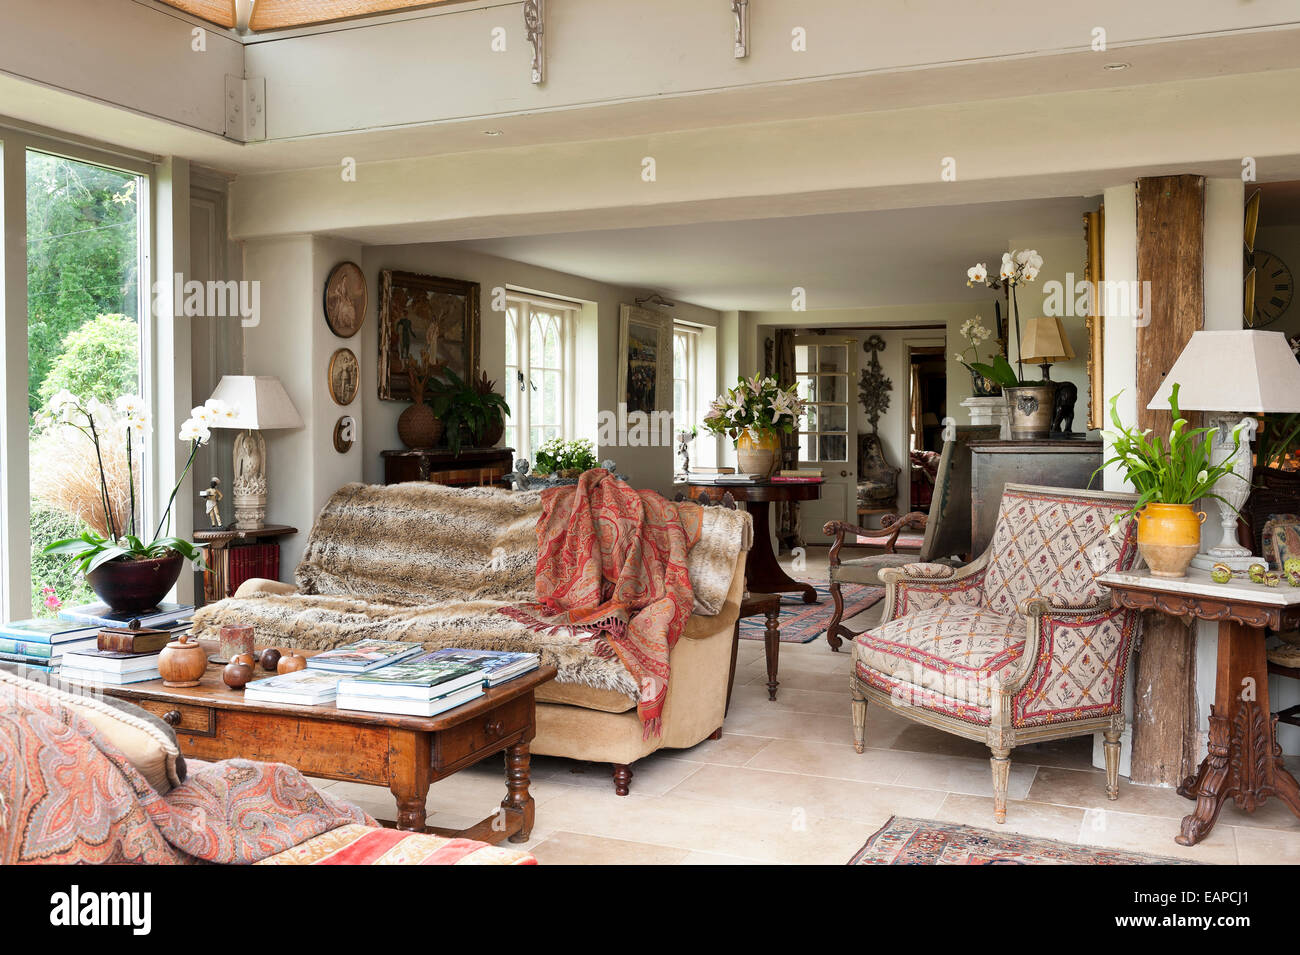 Open plan living room filled with antique seating upholstered in a variety of textiles and fabrics - Stock Image